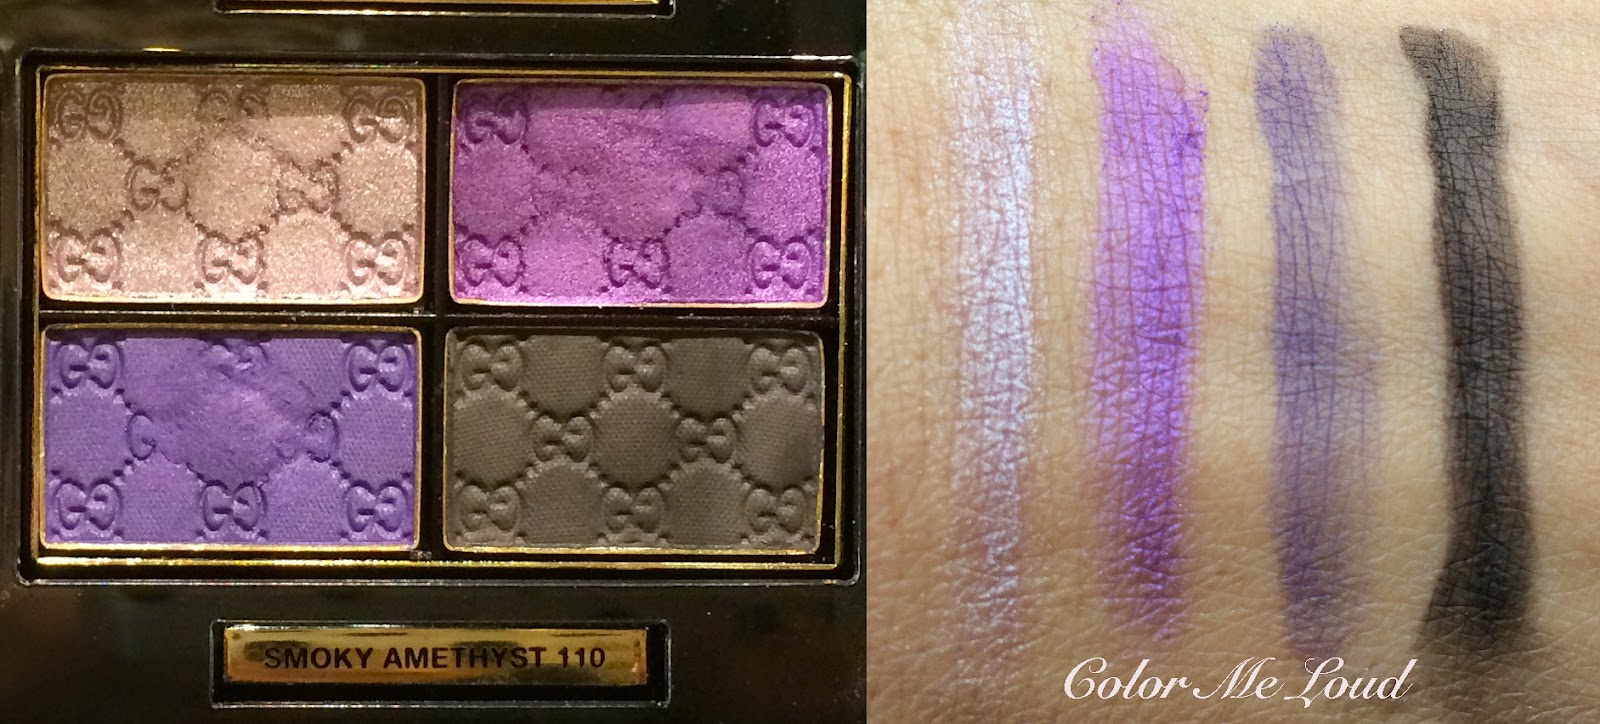 Swatch: Gucci Magnetic Color Eye Shadow Quad in Smoky Amethyst